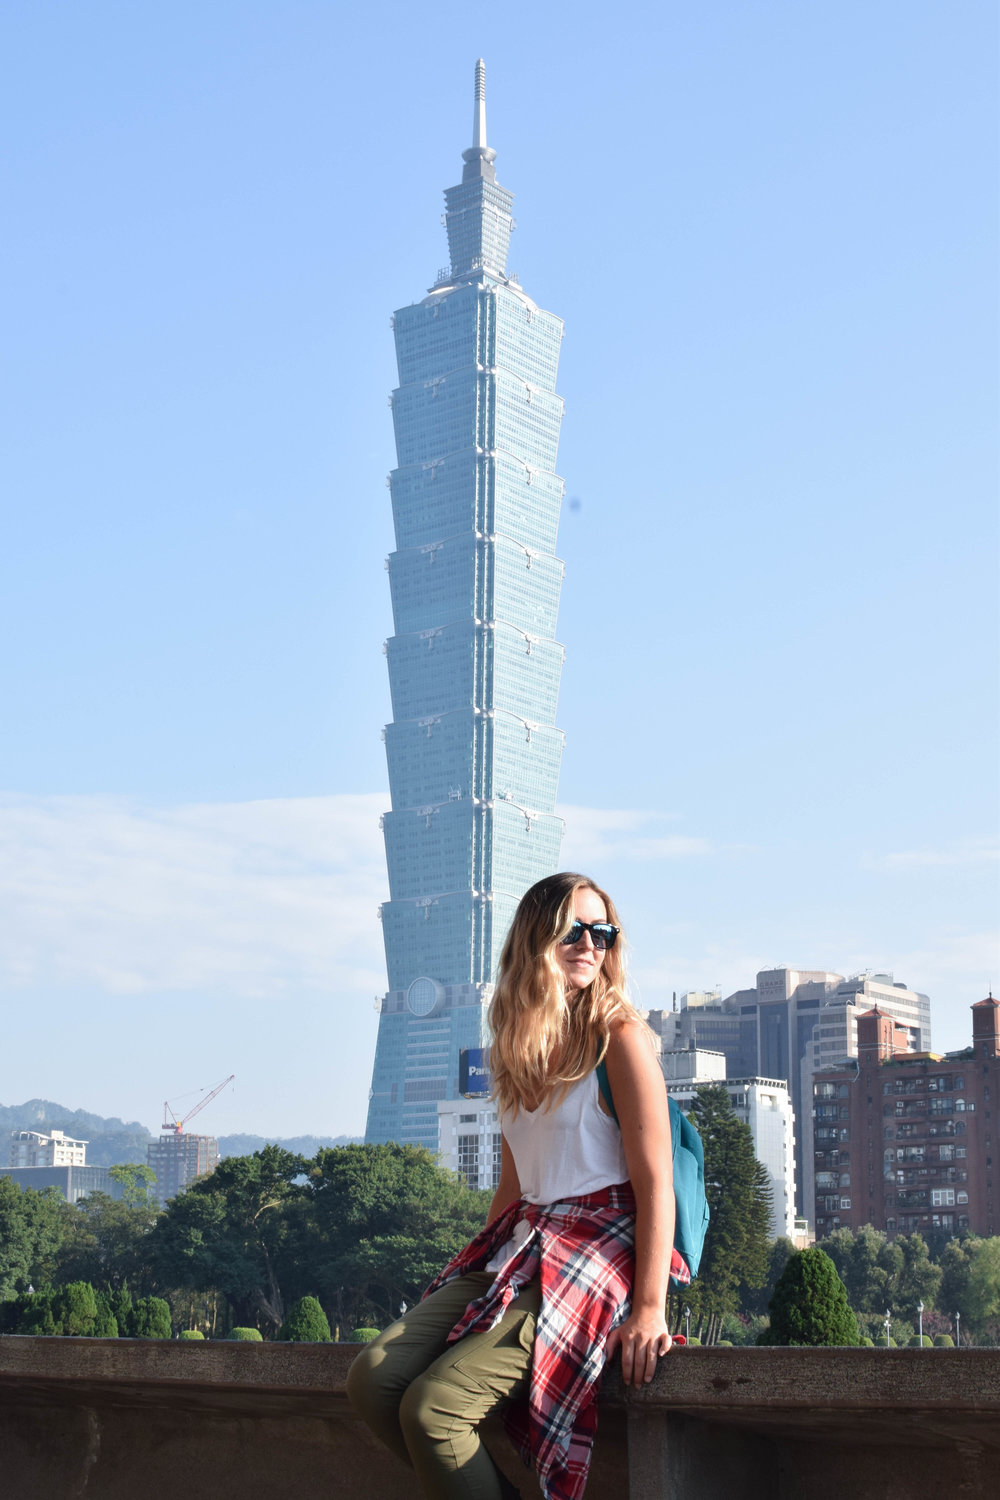 Hangin' with the Taipei 101.